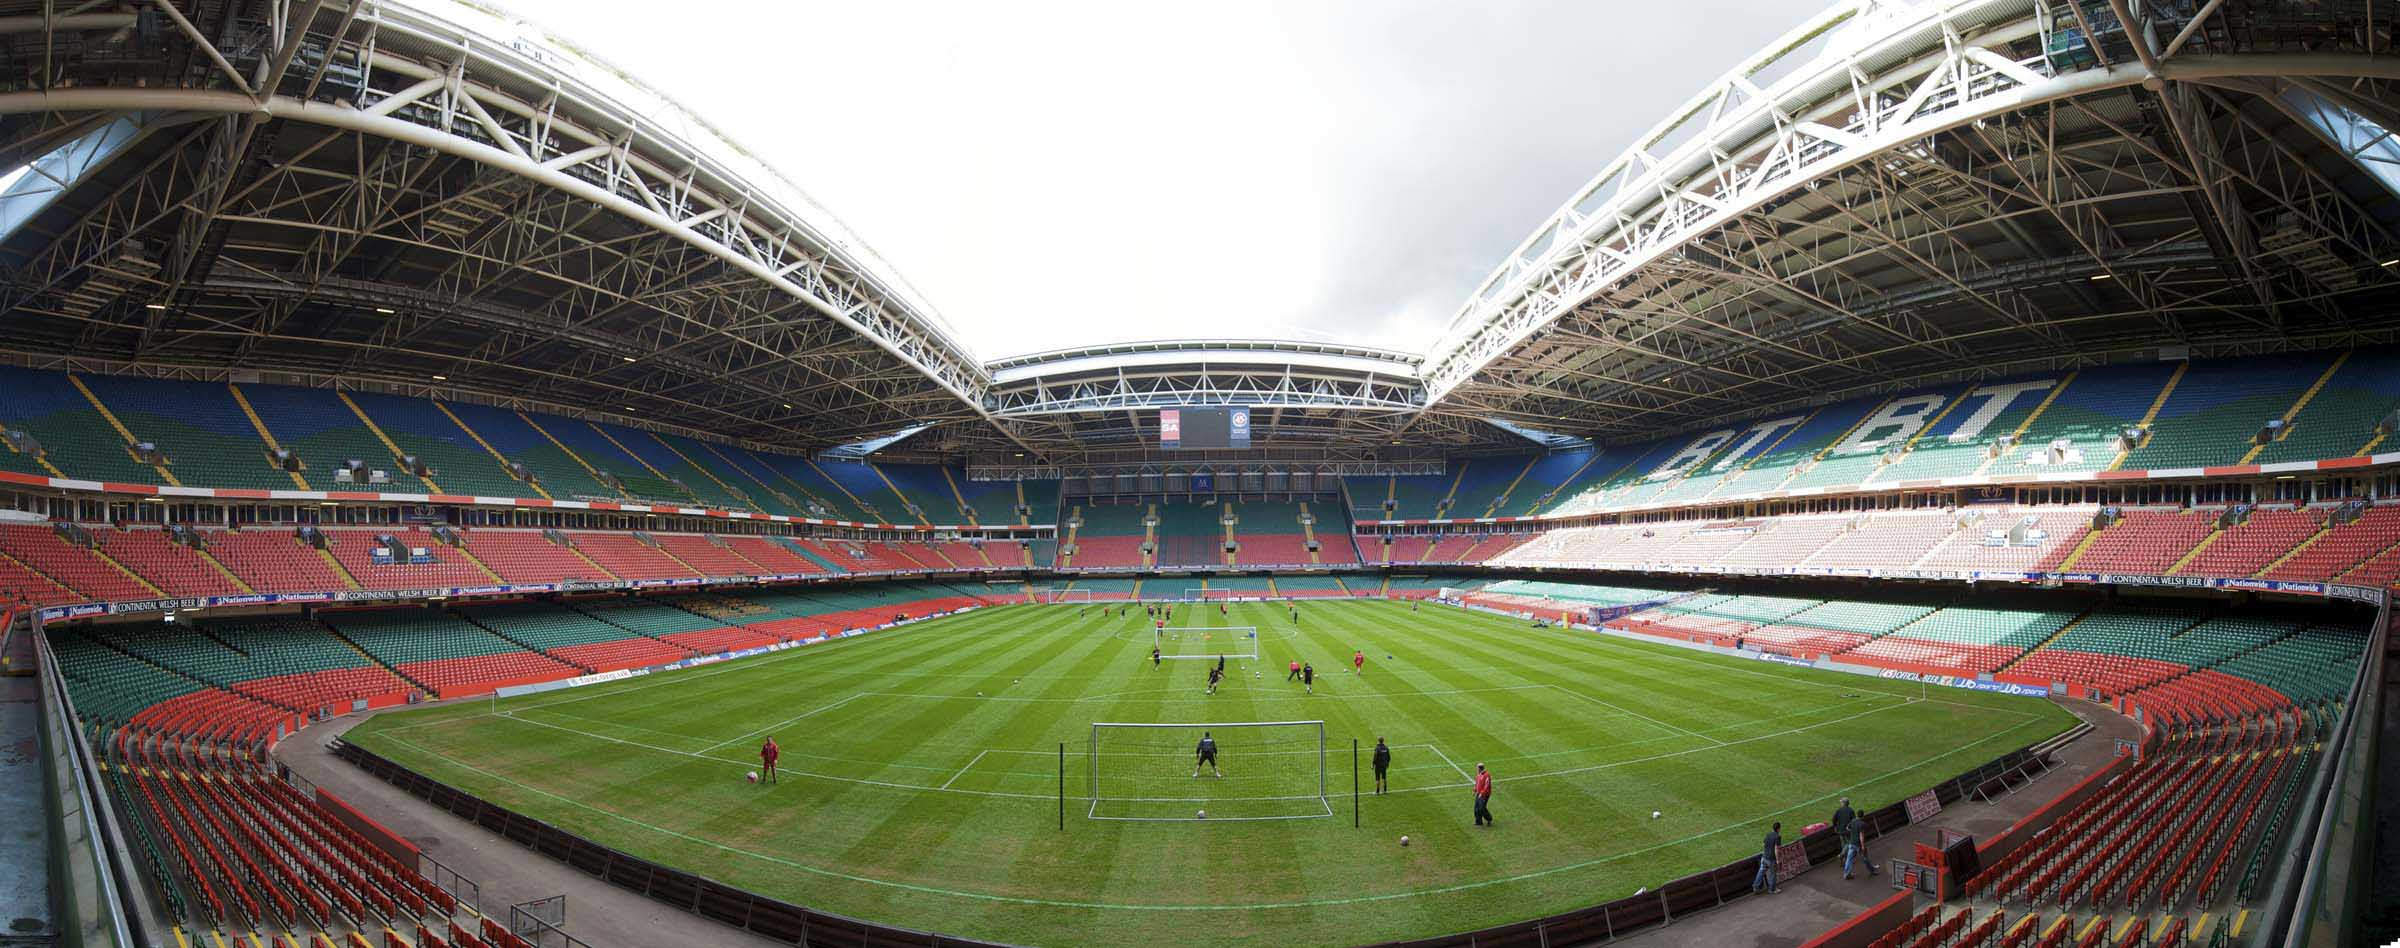 International Football - 2010 FIFA World Cup Qualifier - Group 4 - Wales v Finland - Training